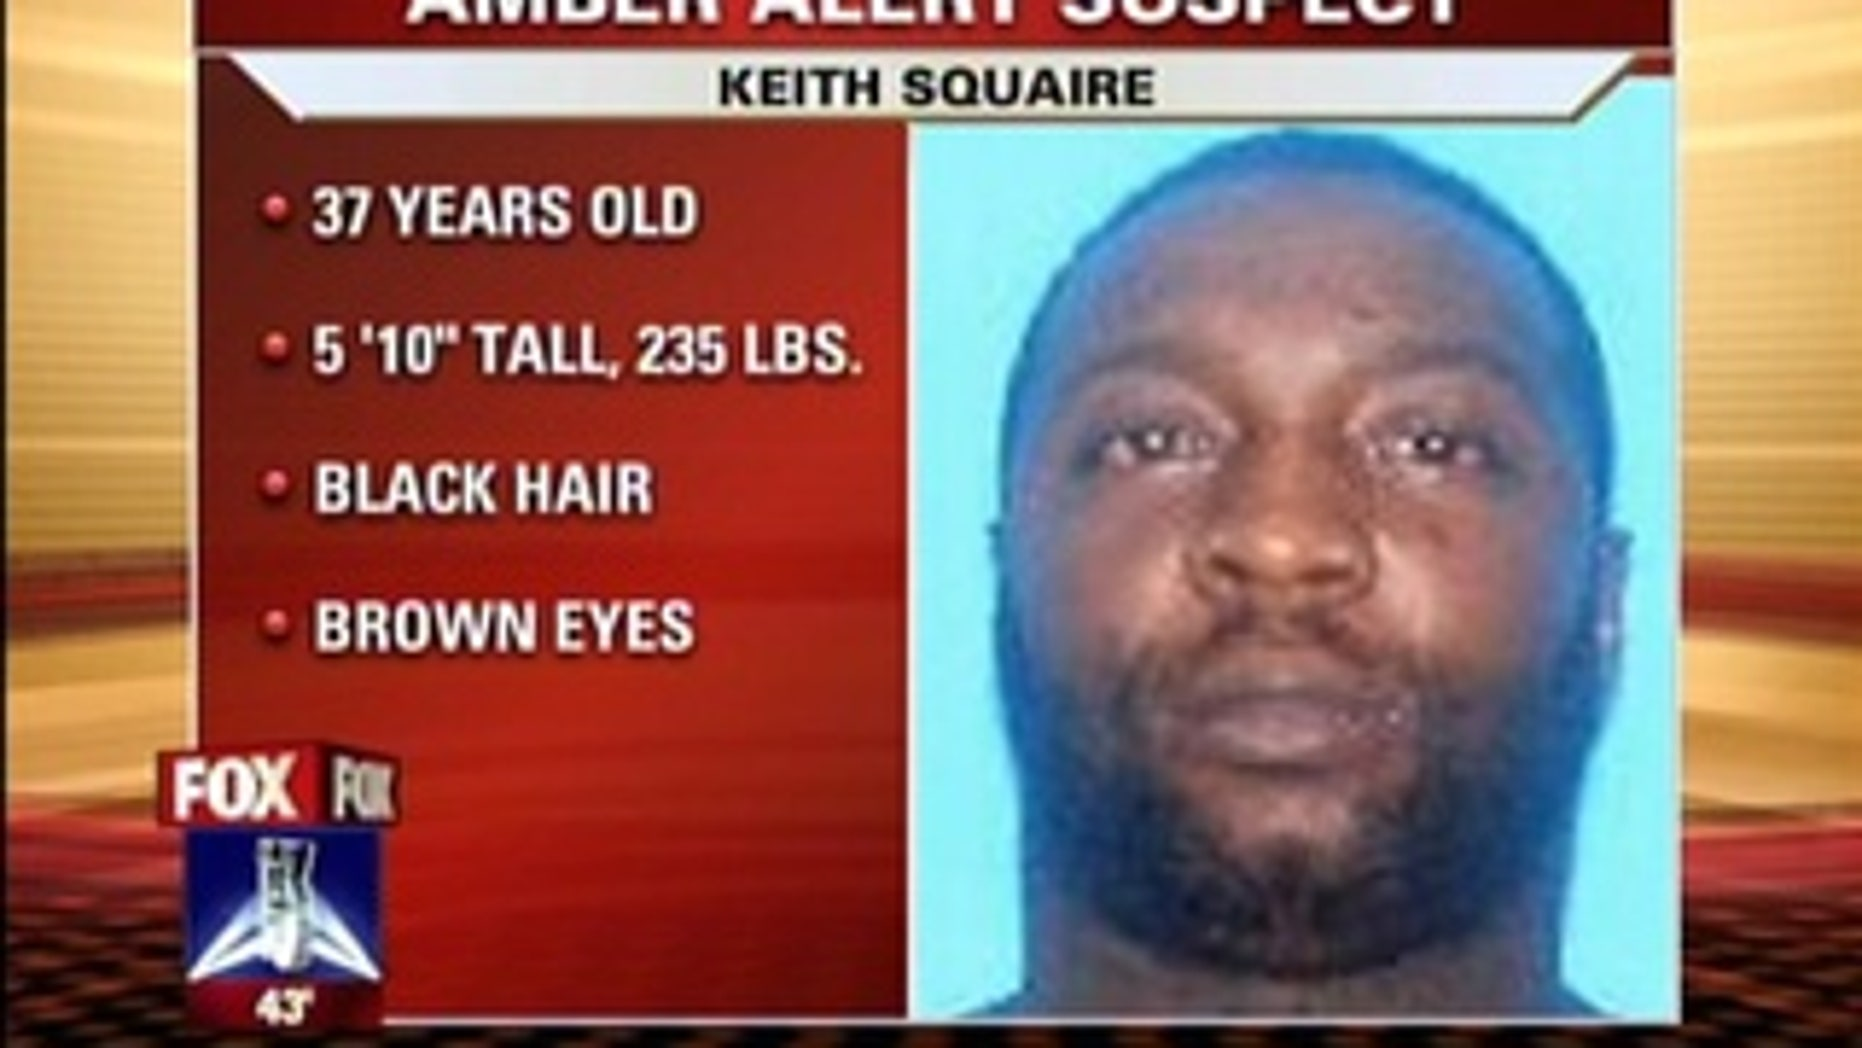 A Pensacola, Florida Amber Alert has been issued for 17-month-old Keith Squaire Jr., who is believed to be with his mother's ex-boyfriend.